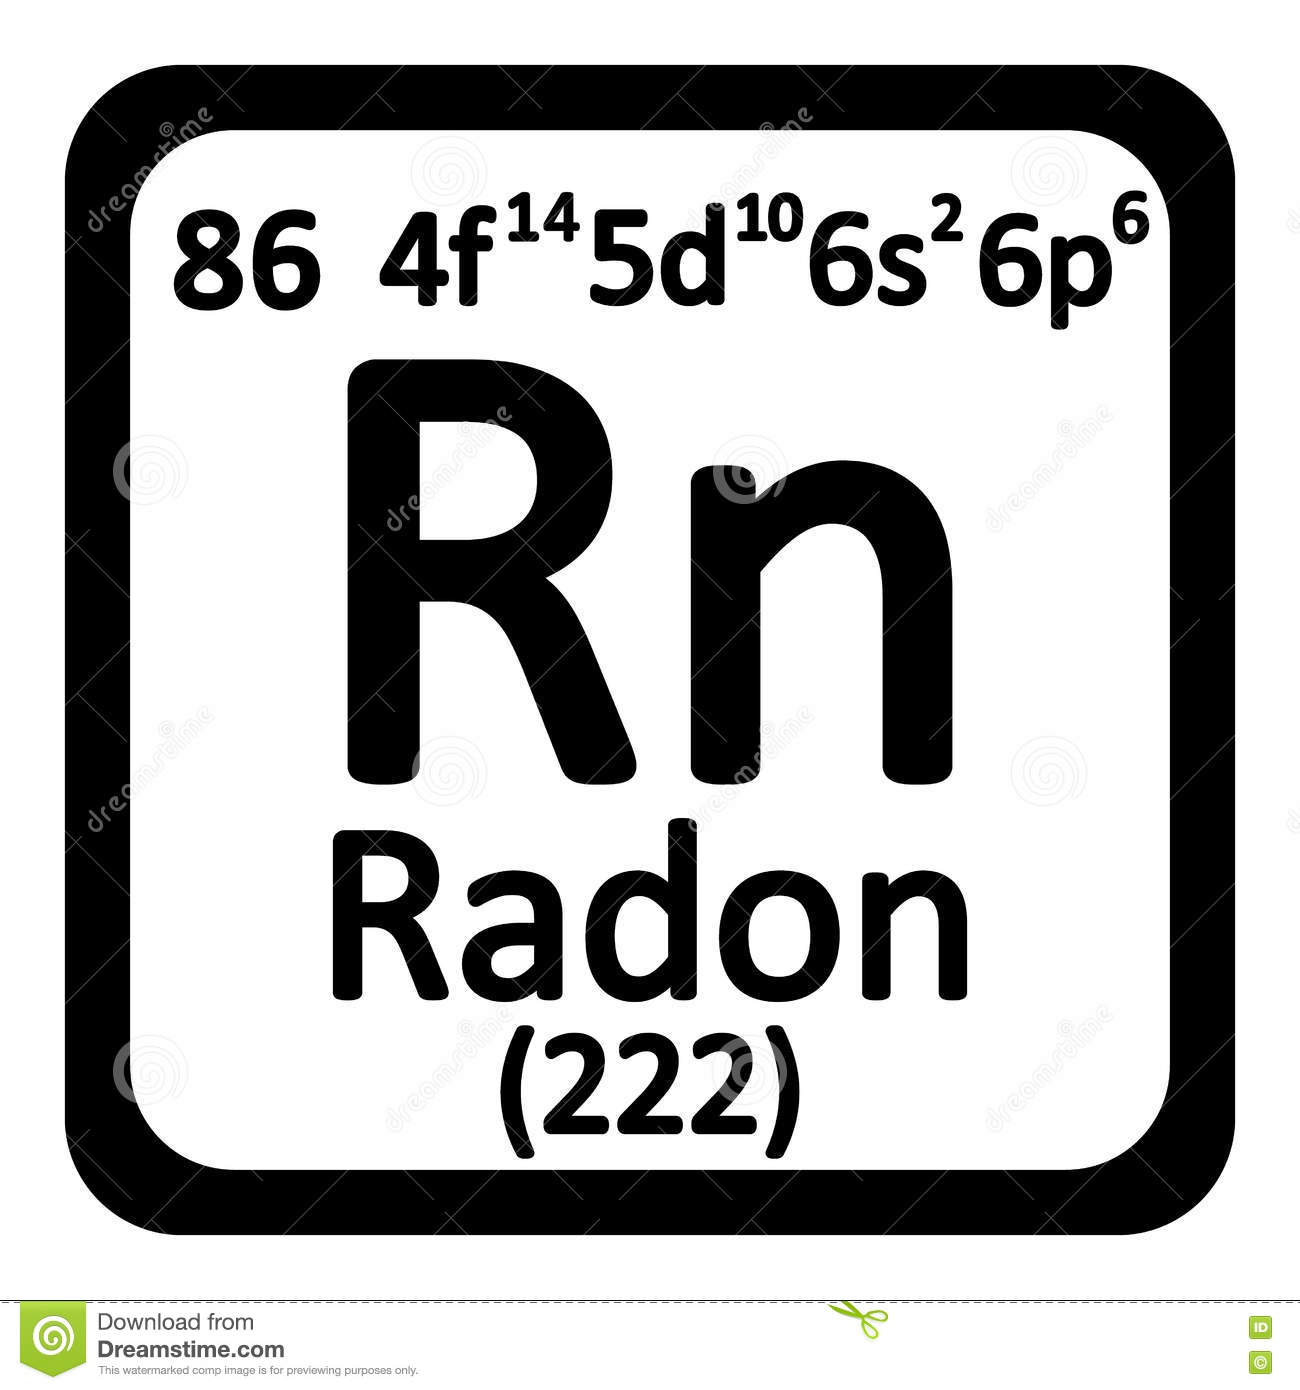 Radon symbol periodic table images periodic table images periodic table element radon icon stock illustration image royalty free illustration download periodic table element radon gamestrikefo Images